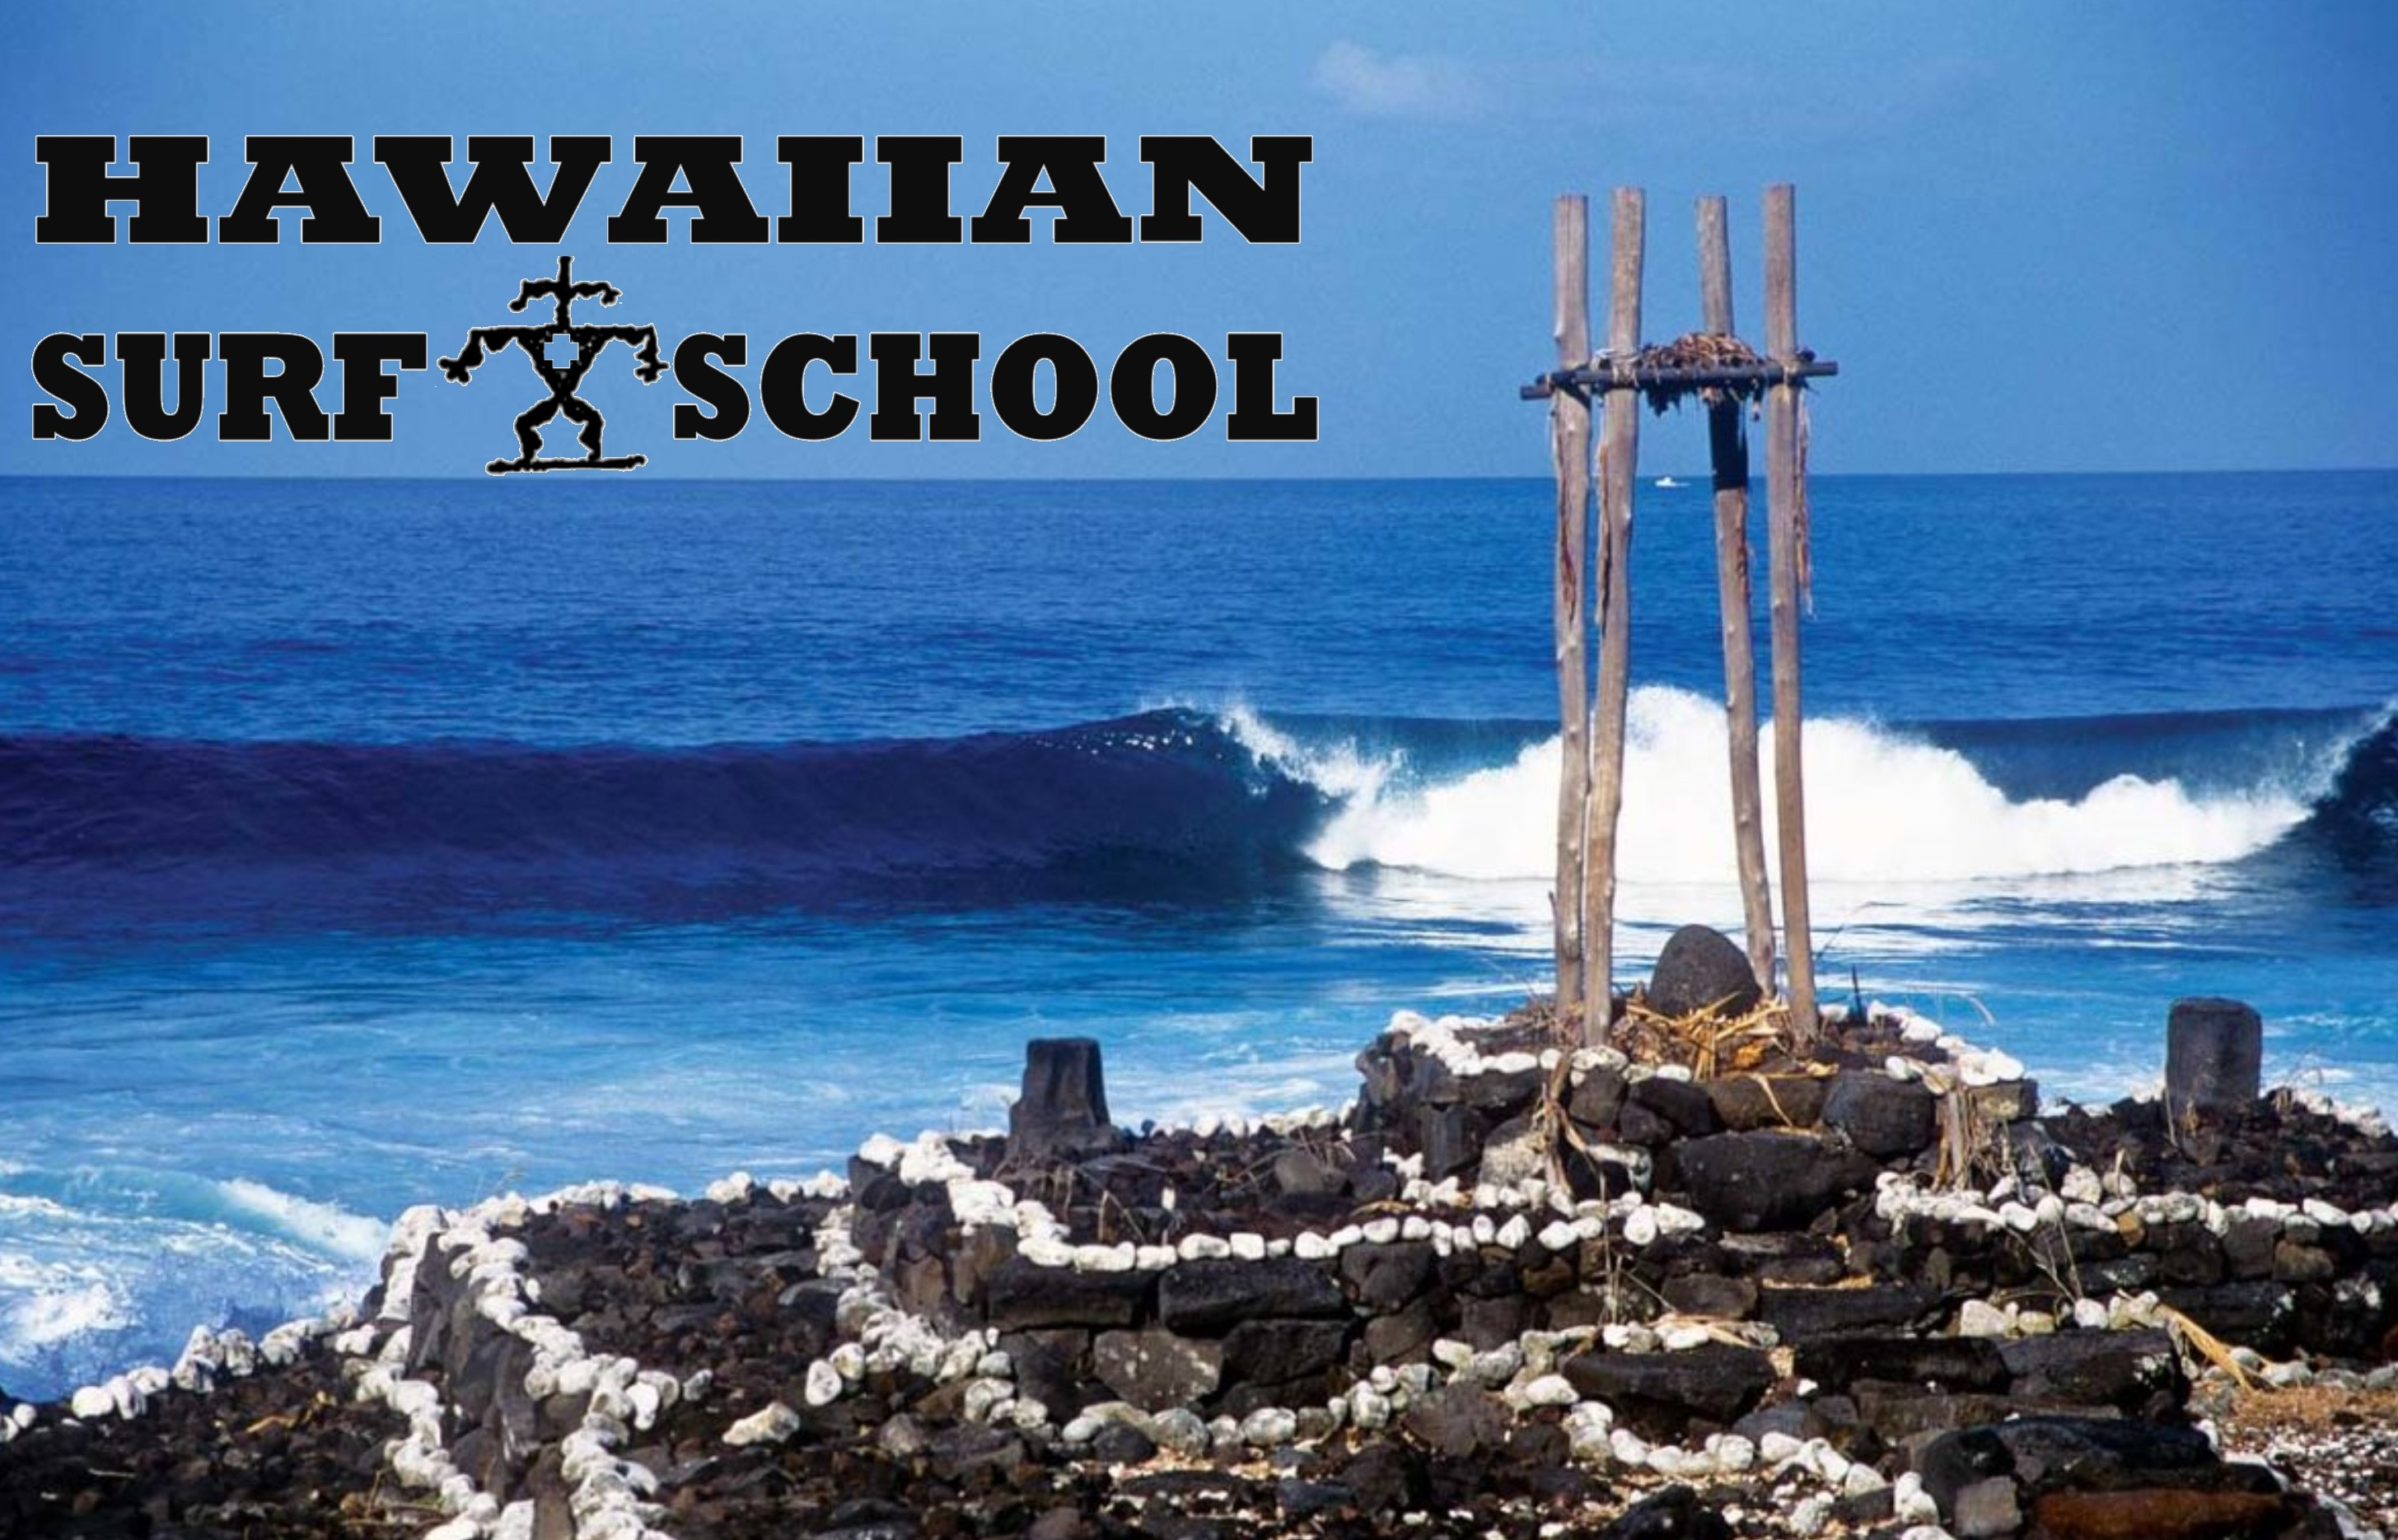 Hawaii Lifeguard surf school